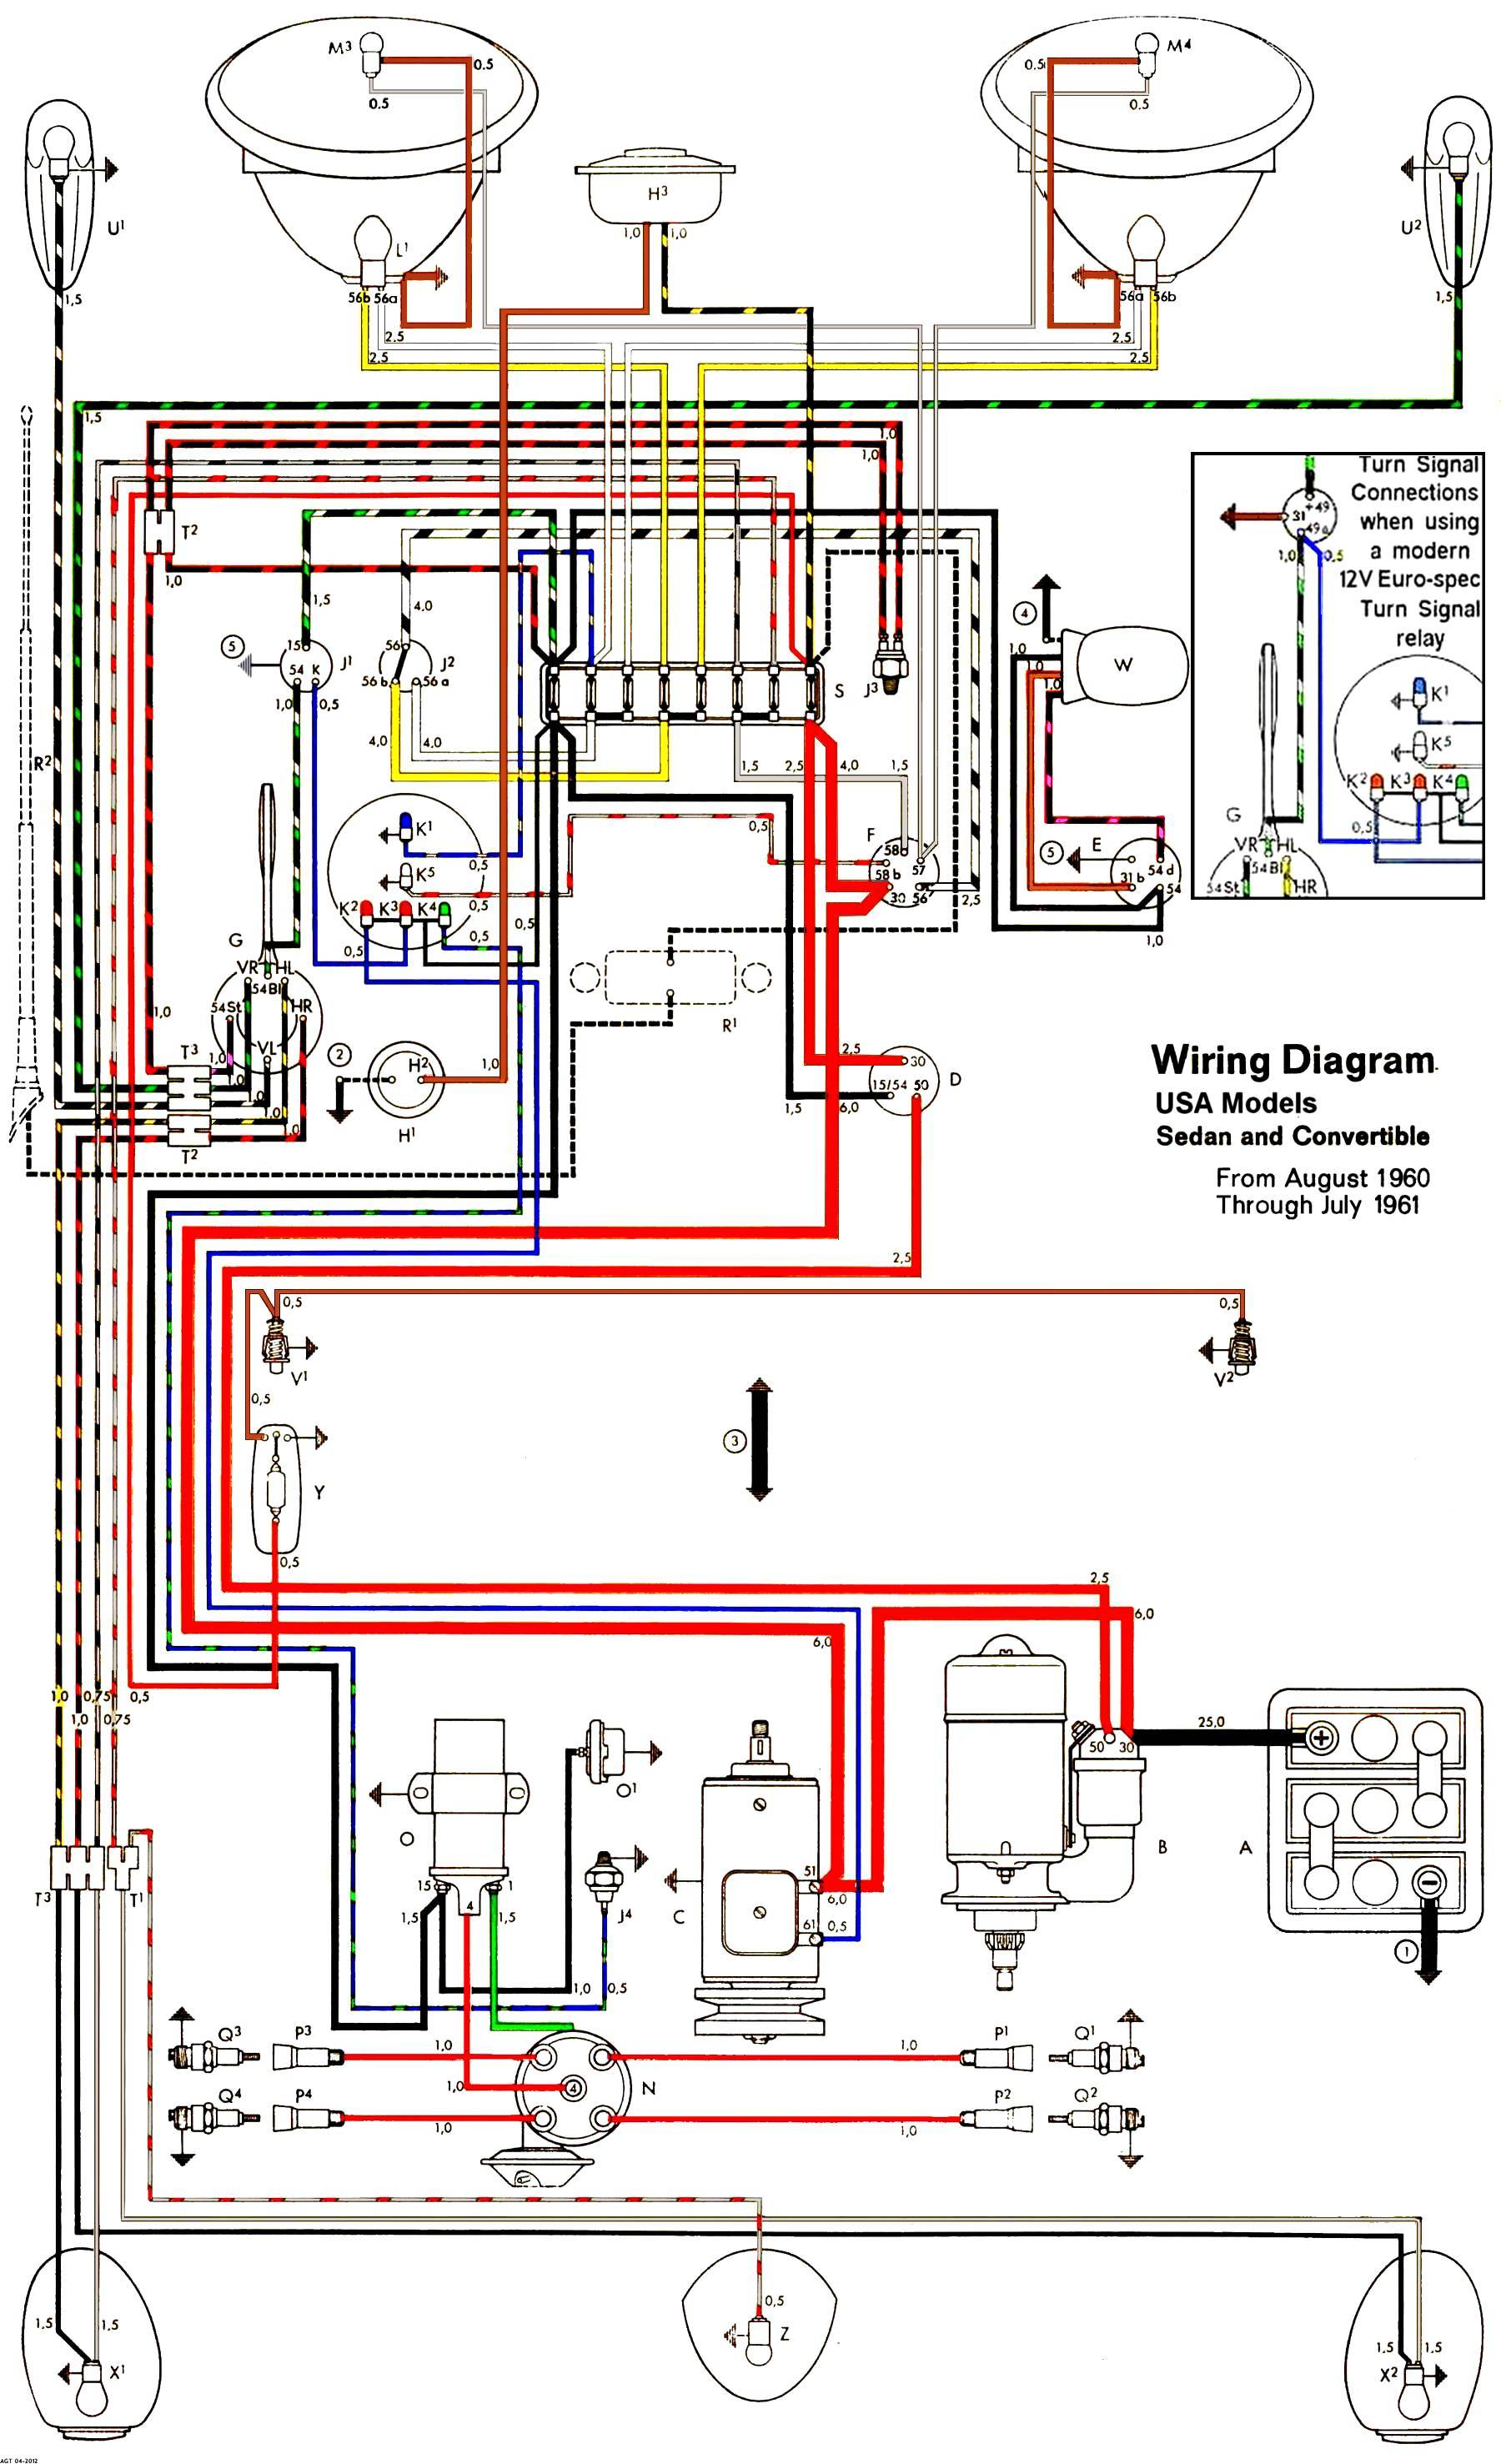 Vw Ignition Switch Wiring Diagram from www.thesamba.com